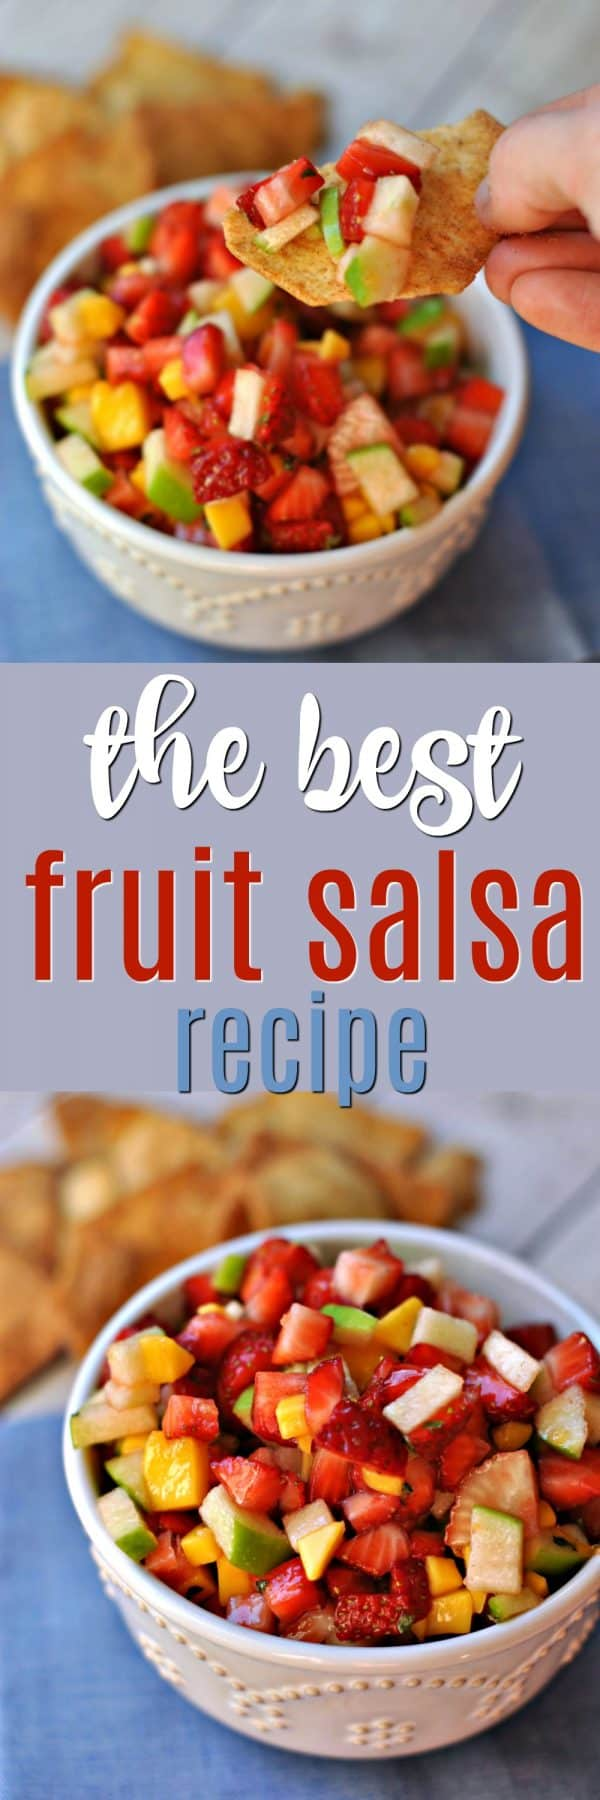 This Fruit Salsa is delicious and so easy to make! Serve this fruit salsa with homemade cinnamon chips for the perfect snack, dessert, or as an appetizer to your next summer party or picnic!